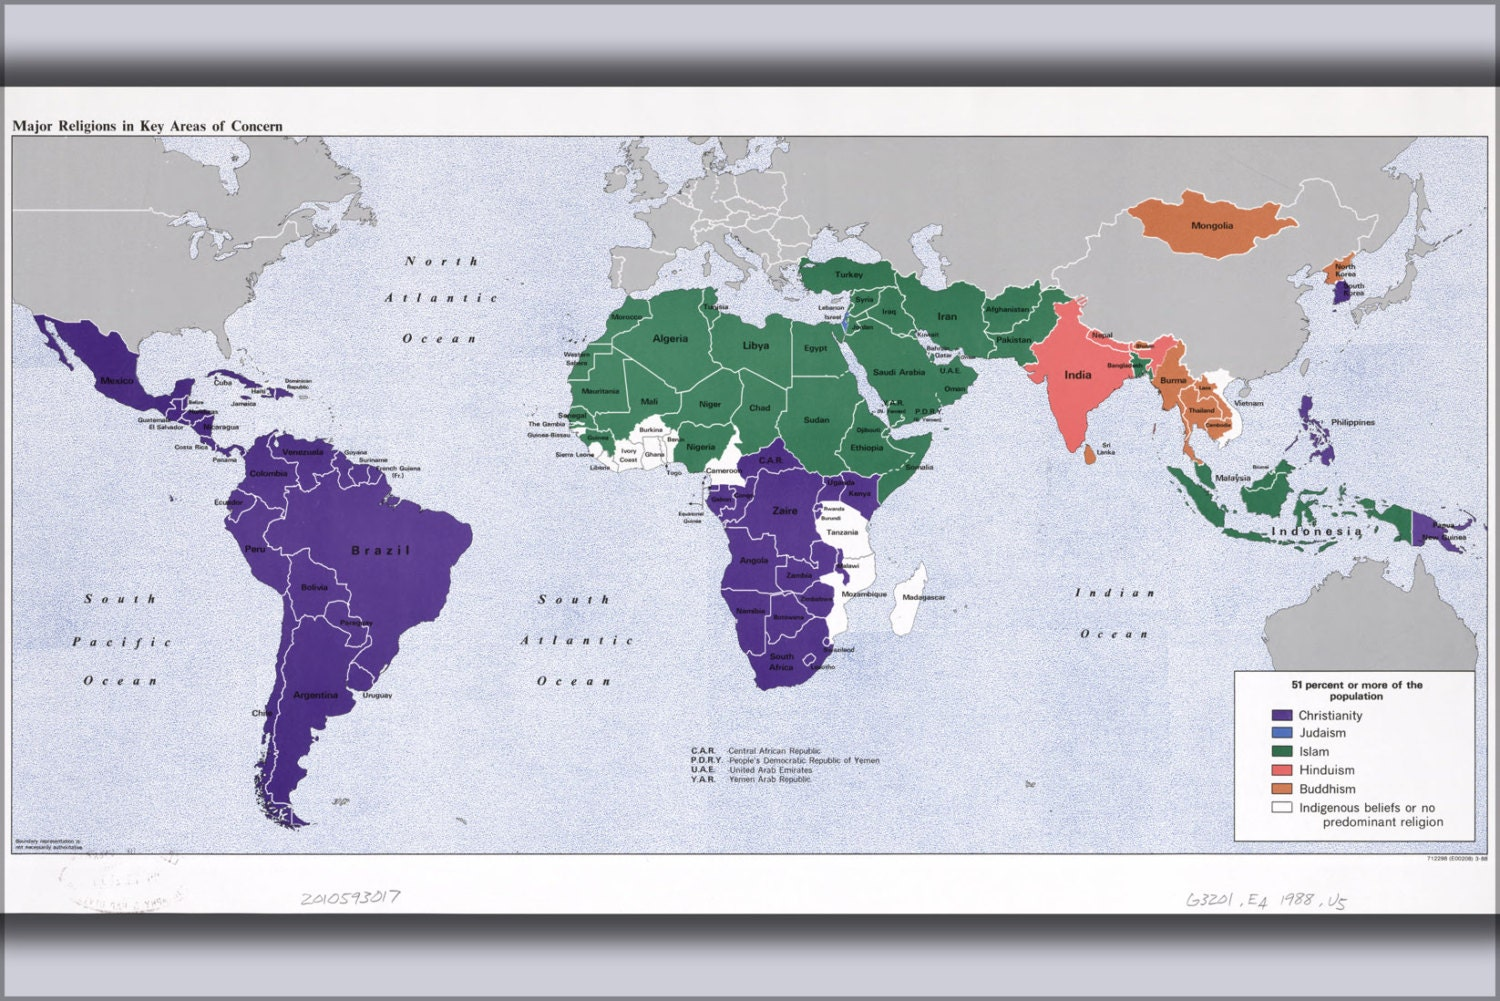 24x36 Poster Cia World Map Of Religions In Concern Areas 1988